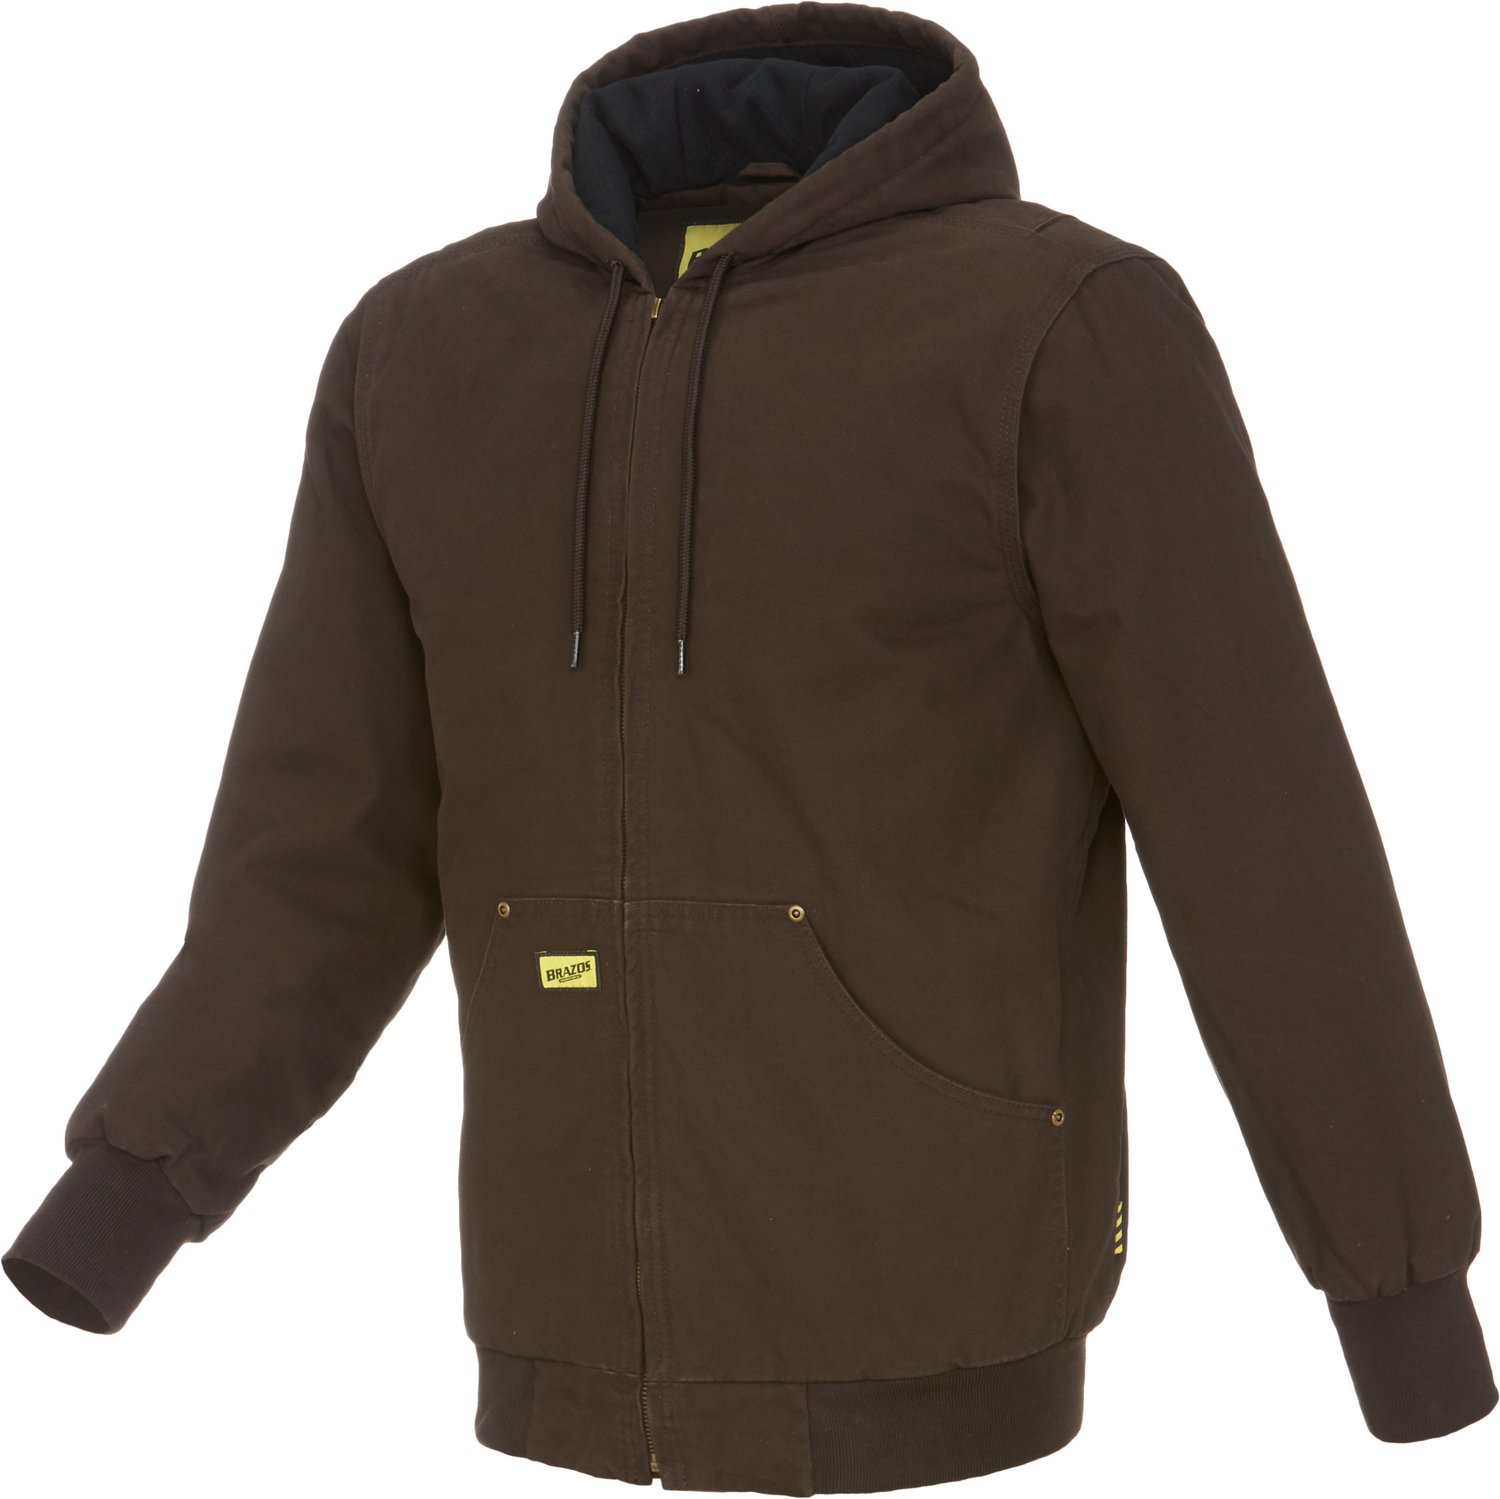 Display product reviews for Brazos Men s Hooded Engineer Jacket 26e39e676